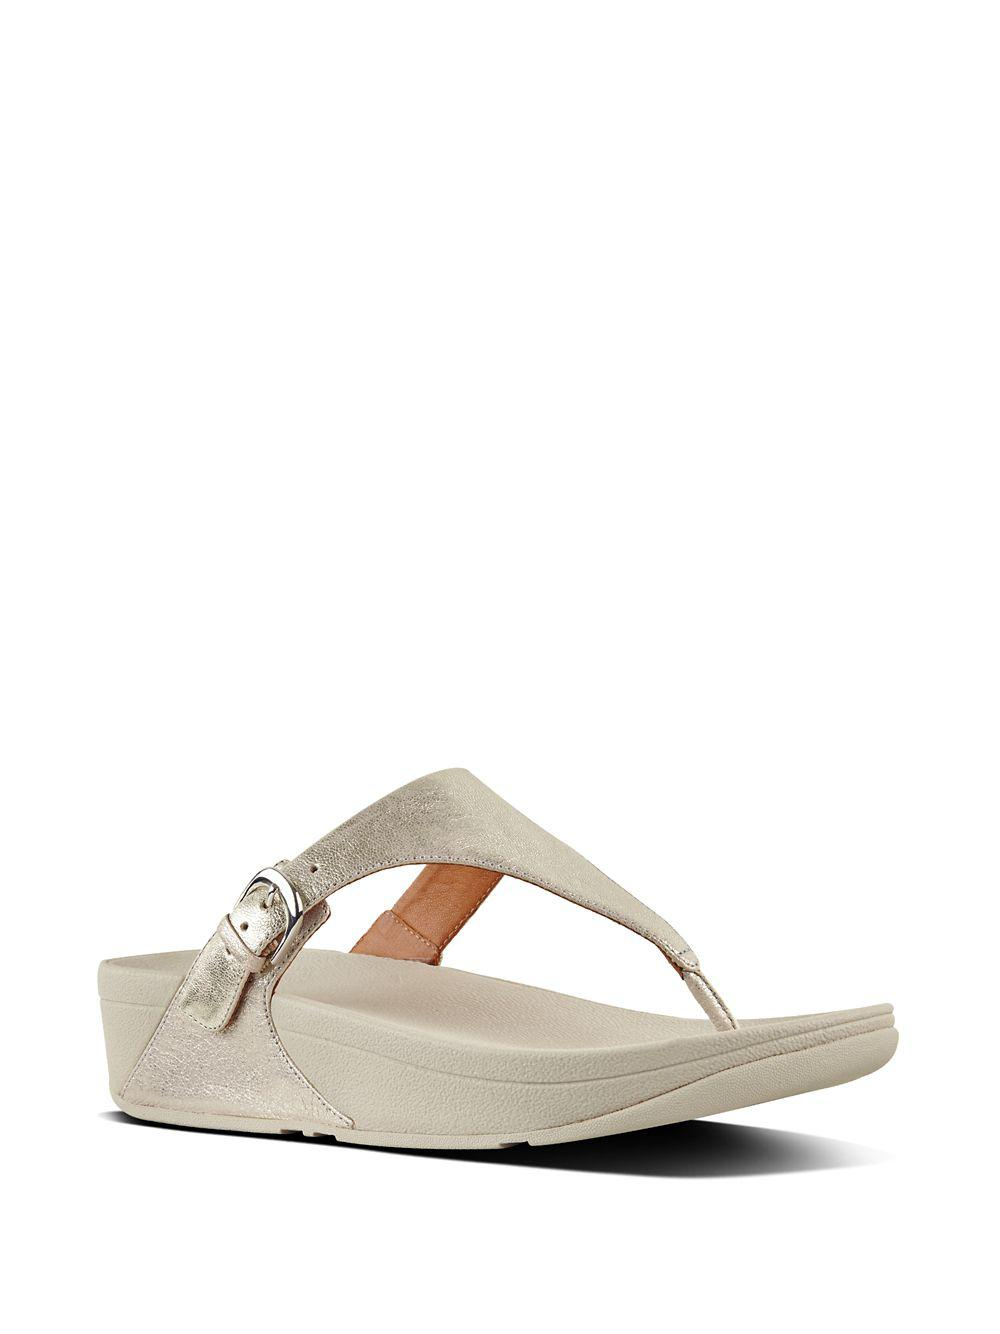 27e6d9dde Lyst - Fitflop Skinny Tm Leather Thong Sandals in Metallic